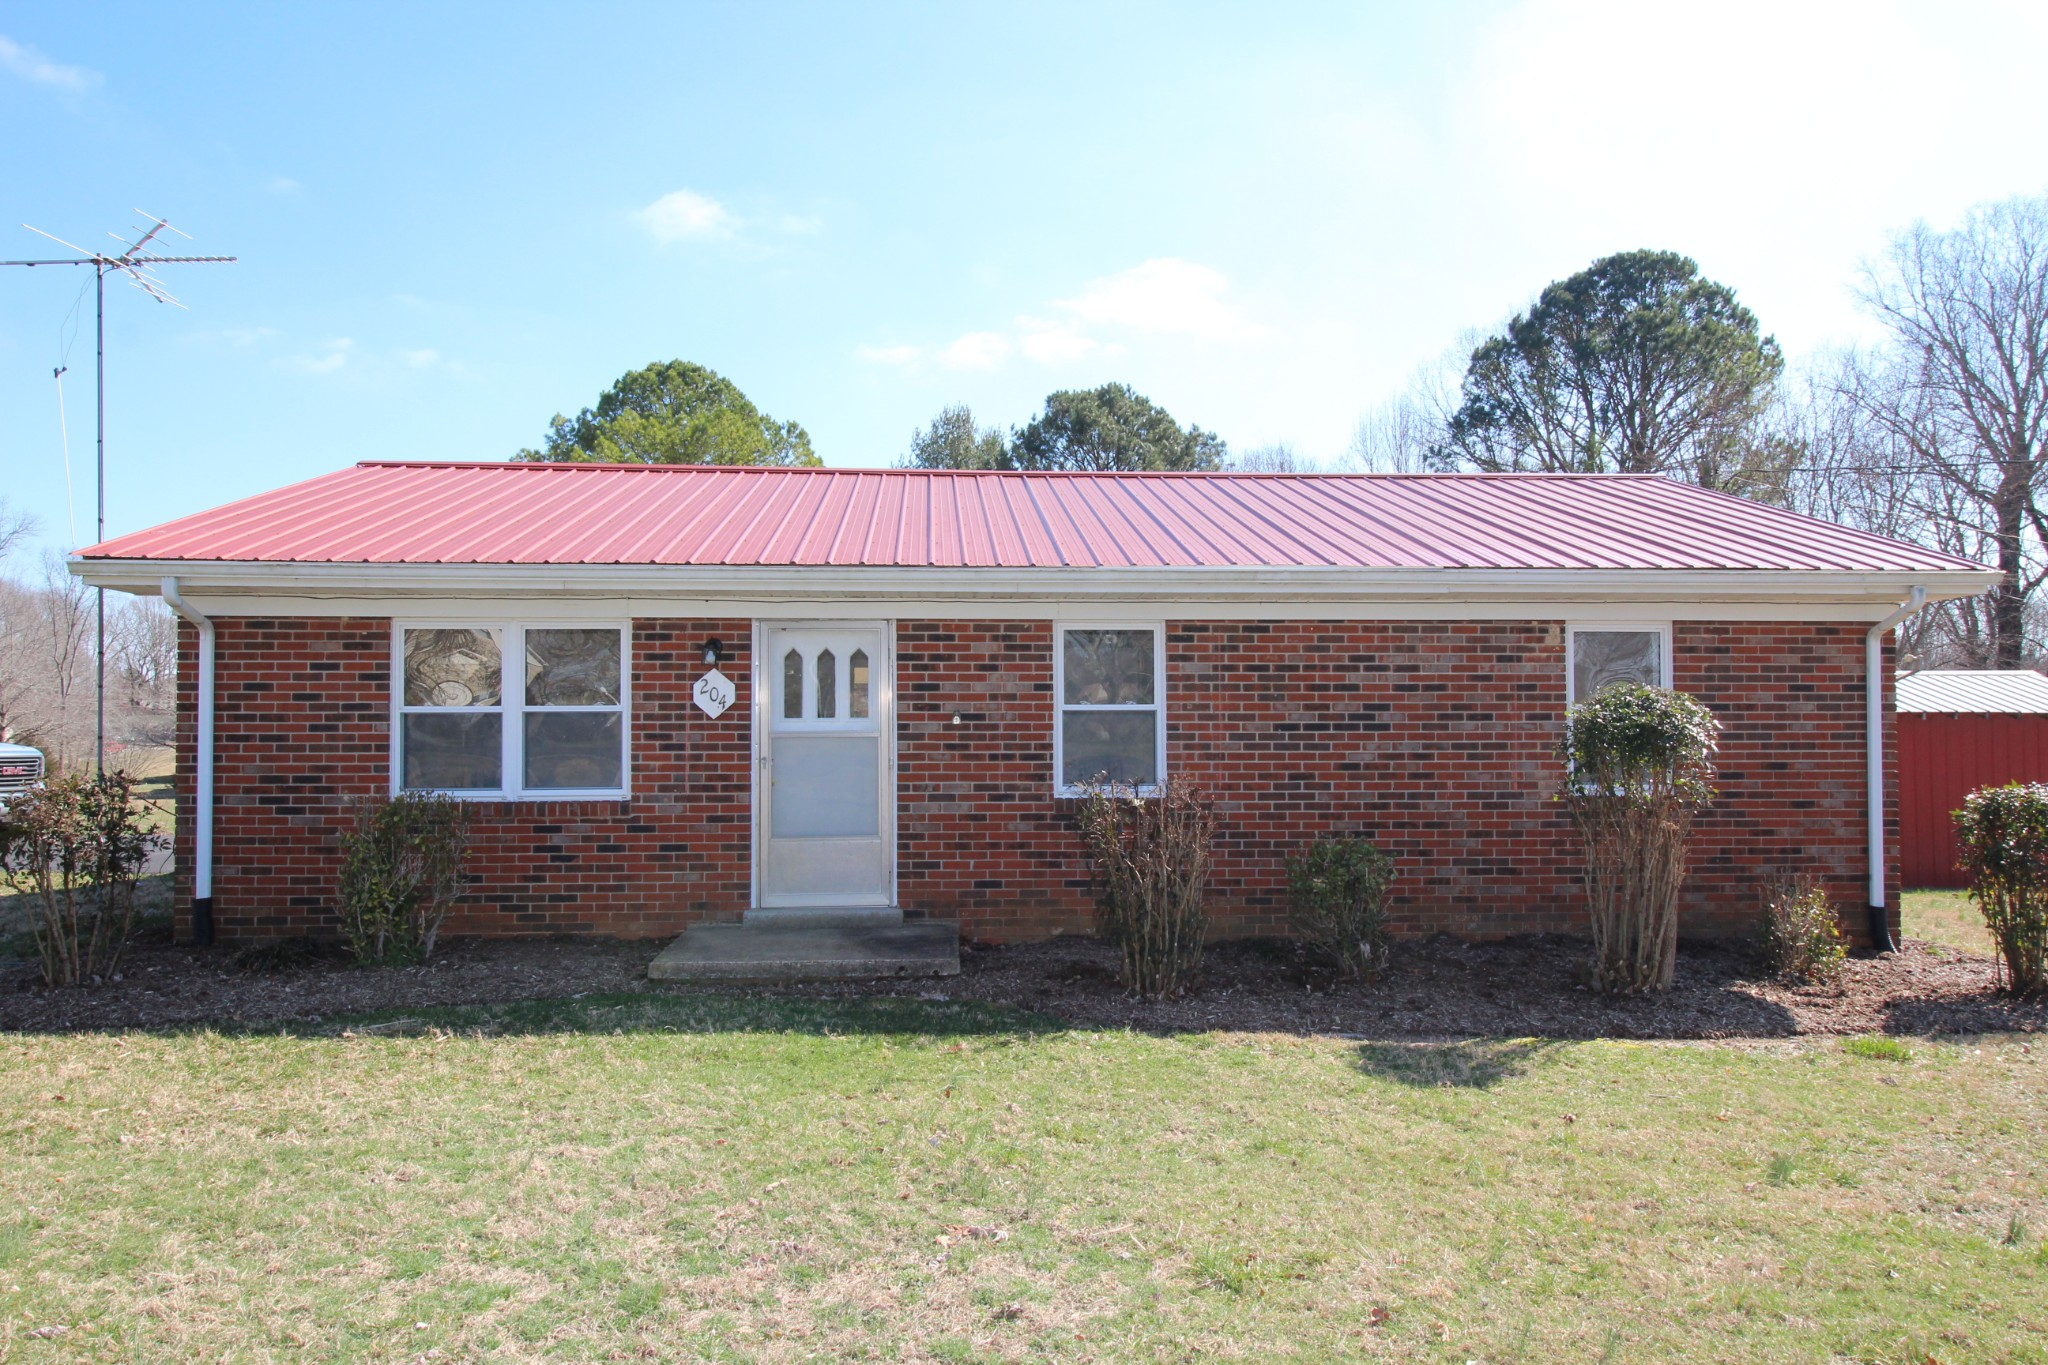 204 Todd Ave, Red Boiling Springs, TN 37150 - Red Boiling Springs, TN real estate listing